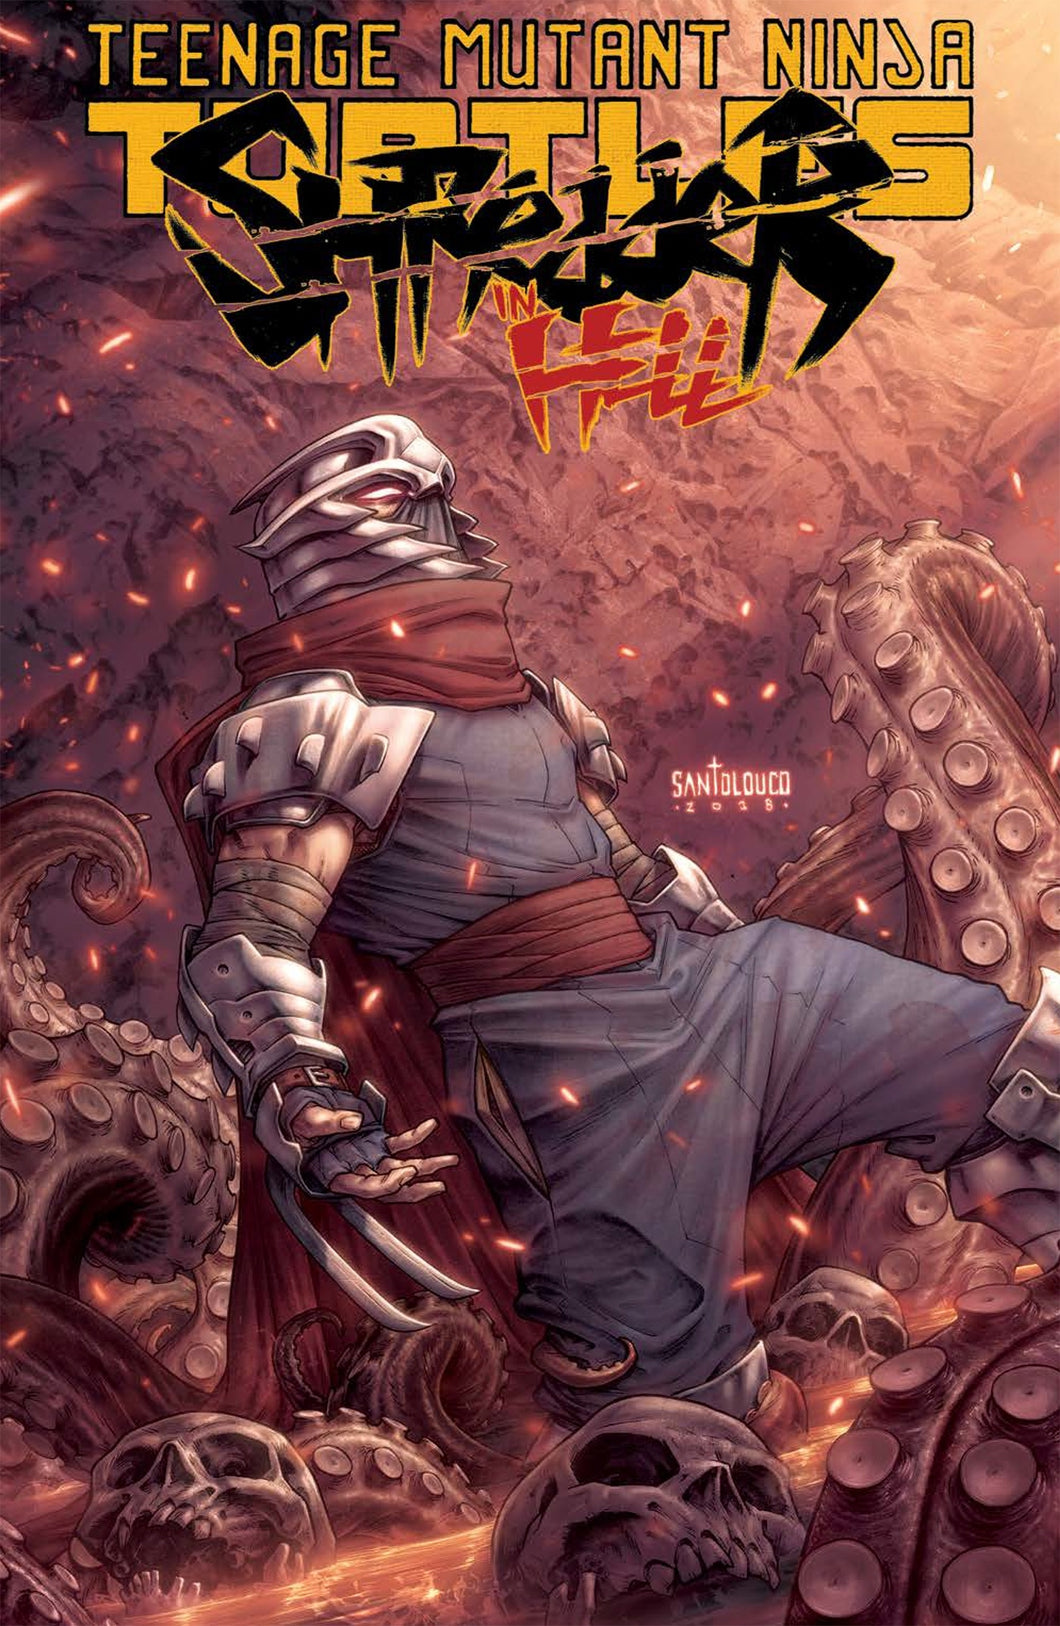 shredder stands in a pit of skulls and tenacled horror.